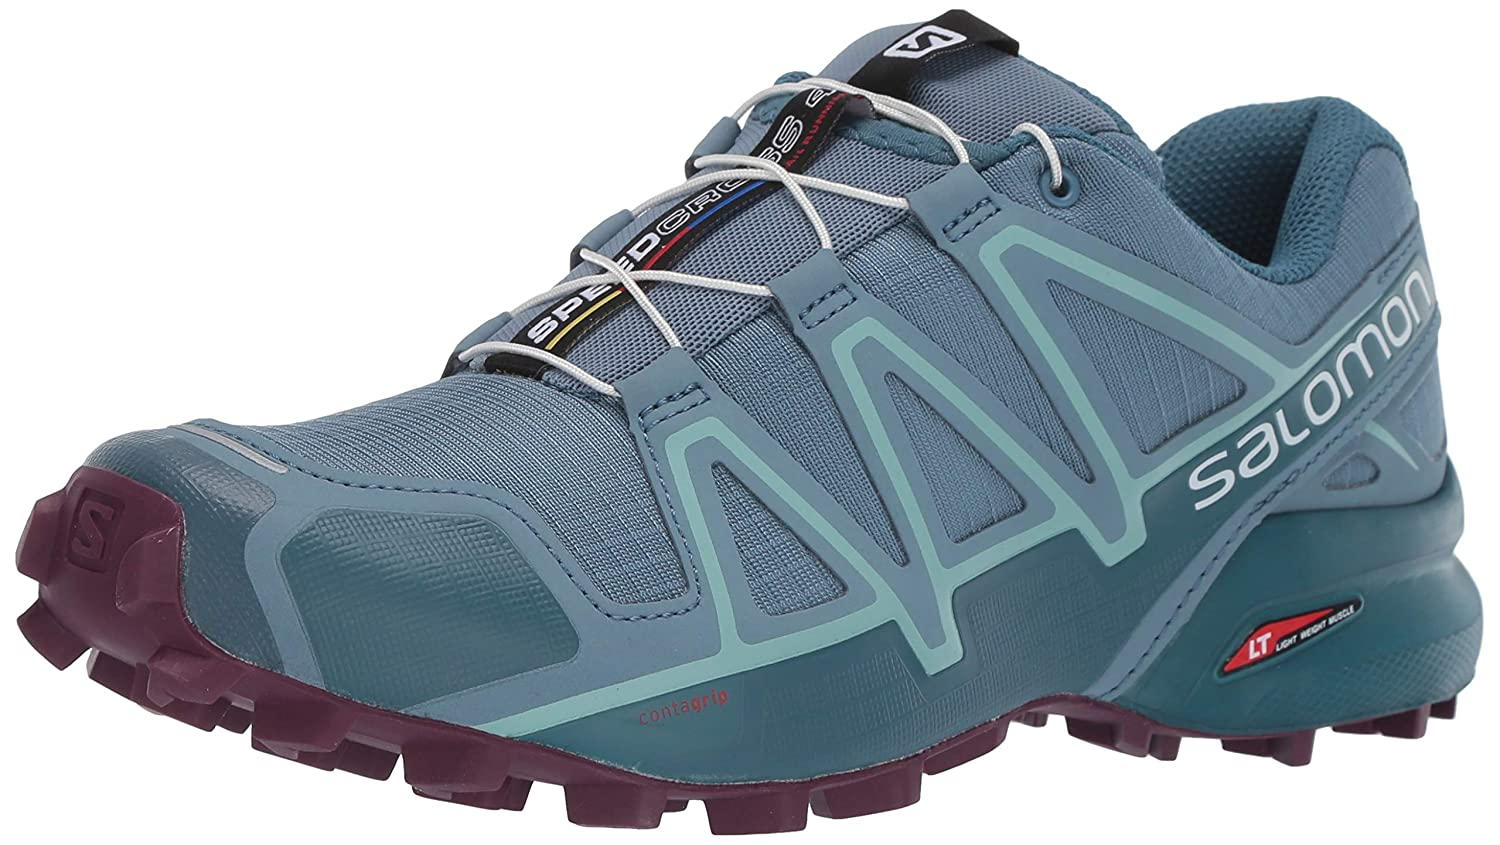 4043906d3e344 Salomon Women s Speedcross 4 Trail Running Shoes  Amazon.co.uk  Shoes   Bags